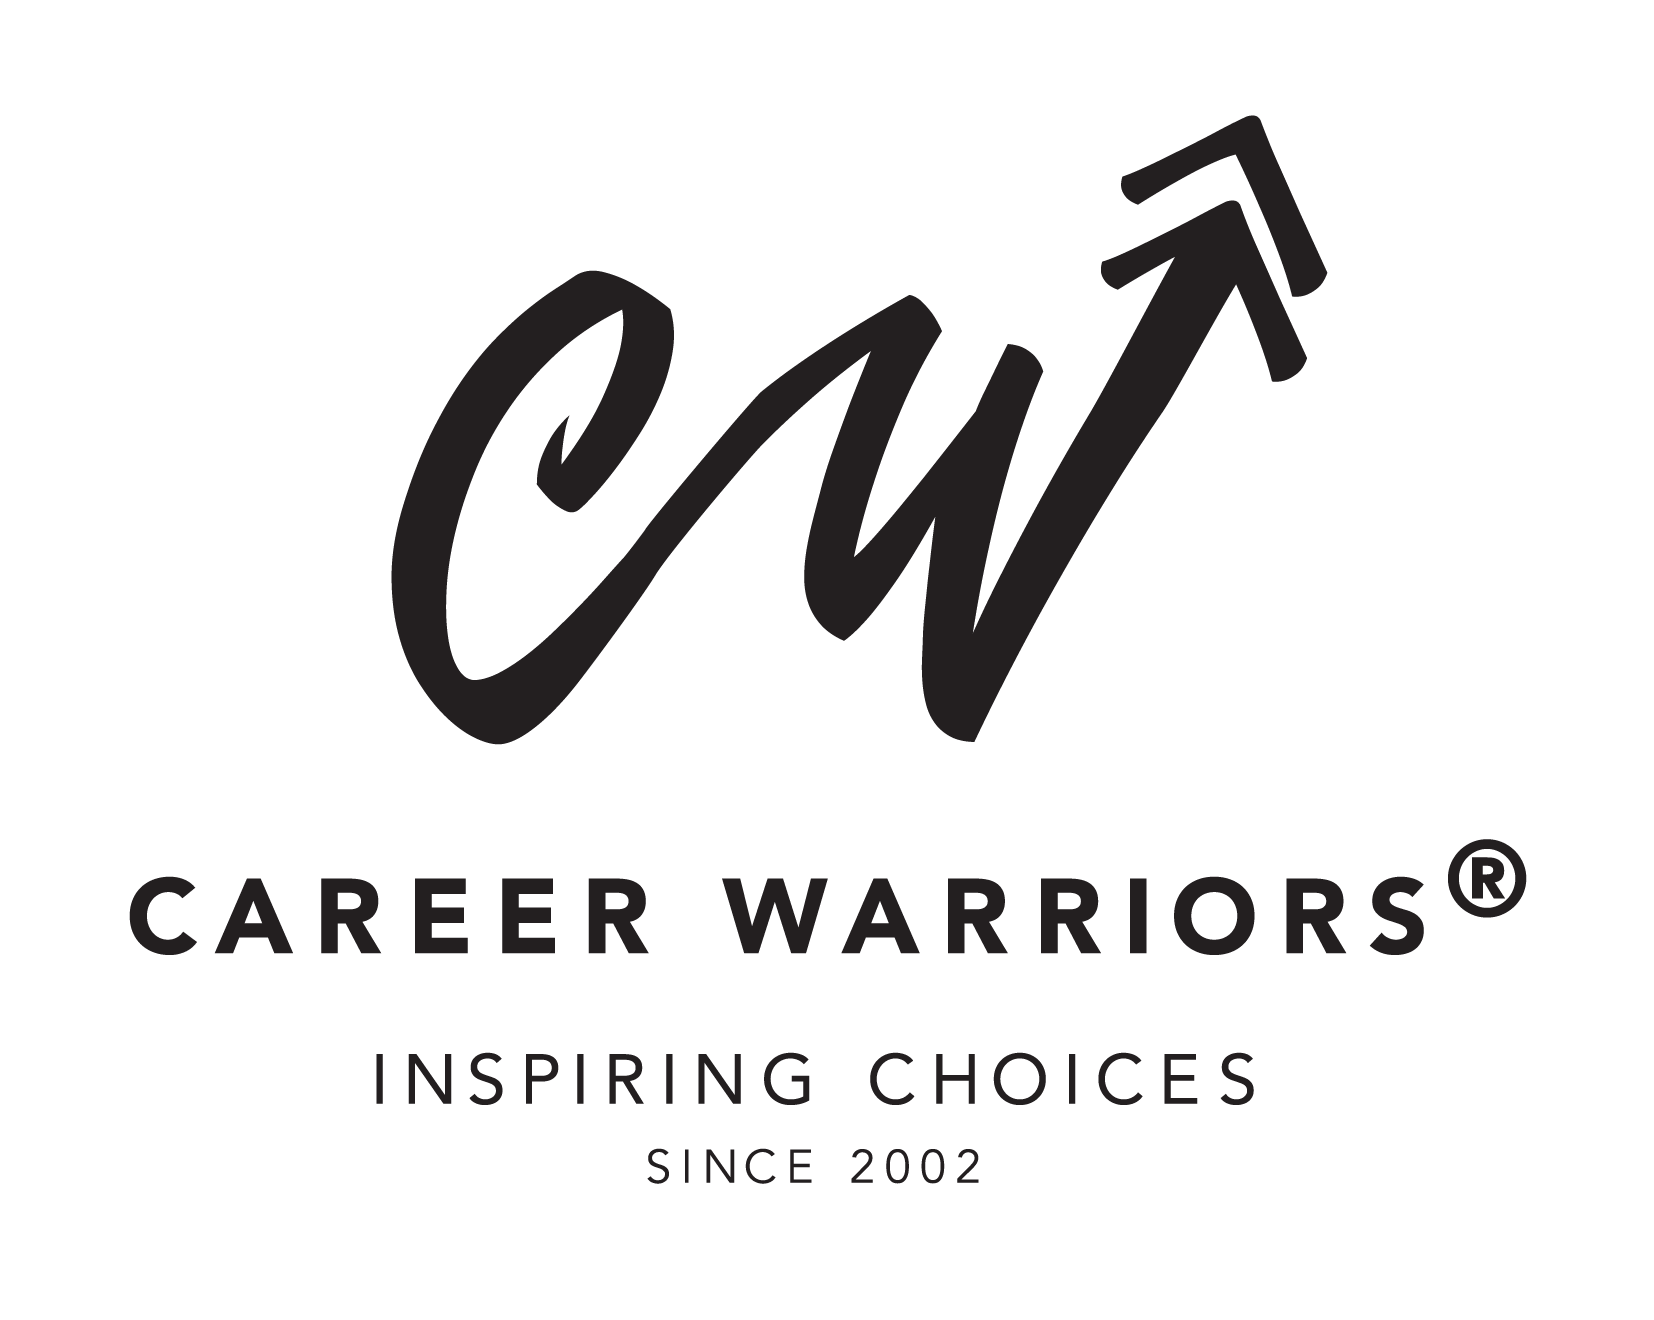 Career Warriors - Inspiring Choices